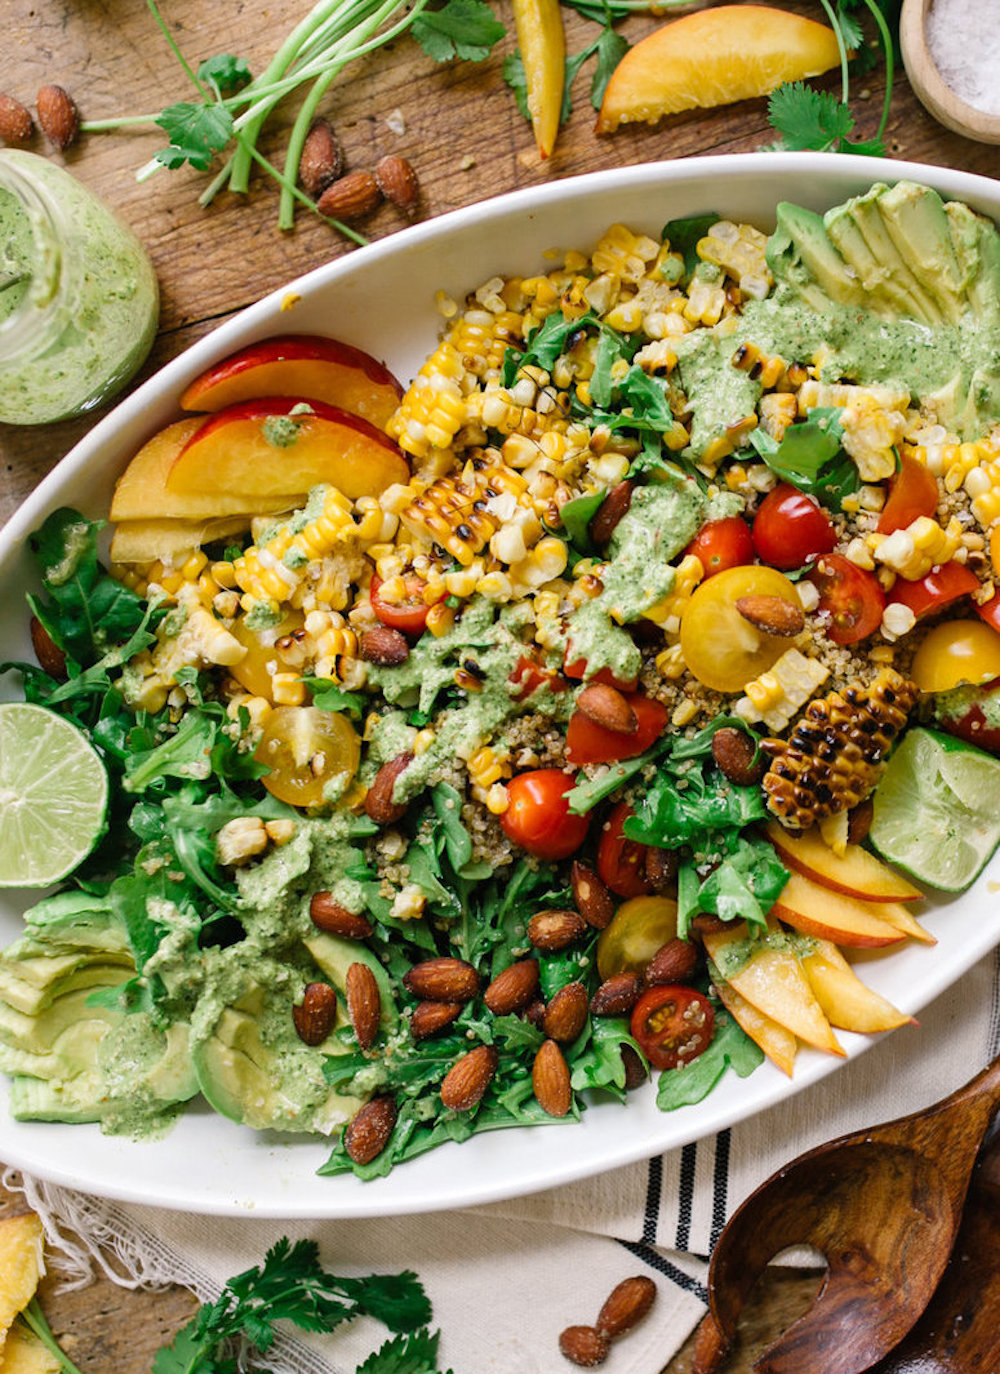 This southwestern superfood salad is bursting with tomatoes, peaches, and all my other favorite flavors of summer!